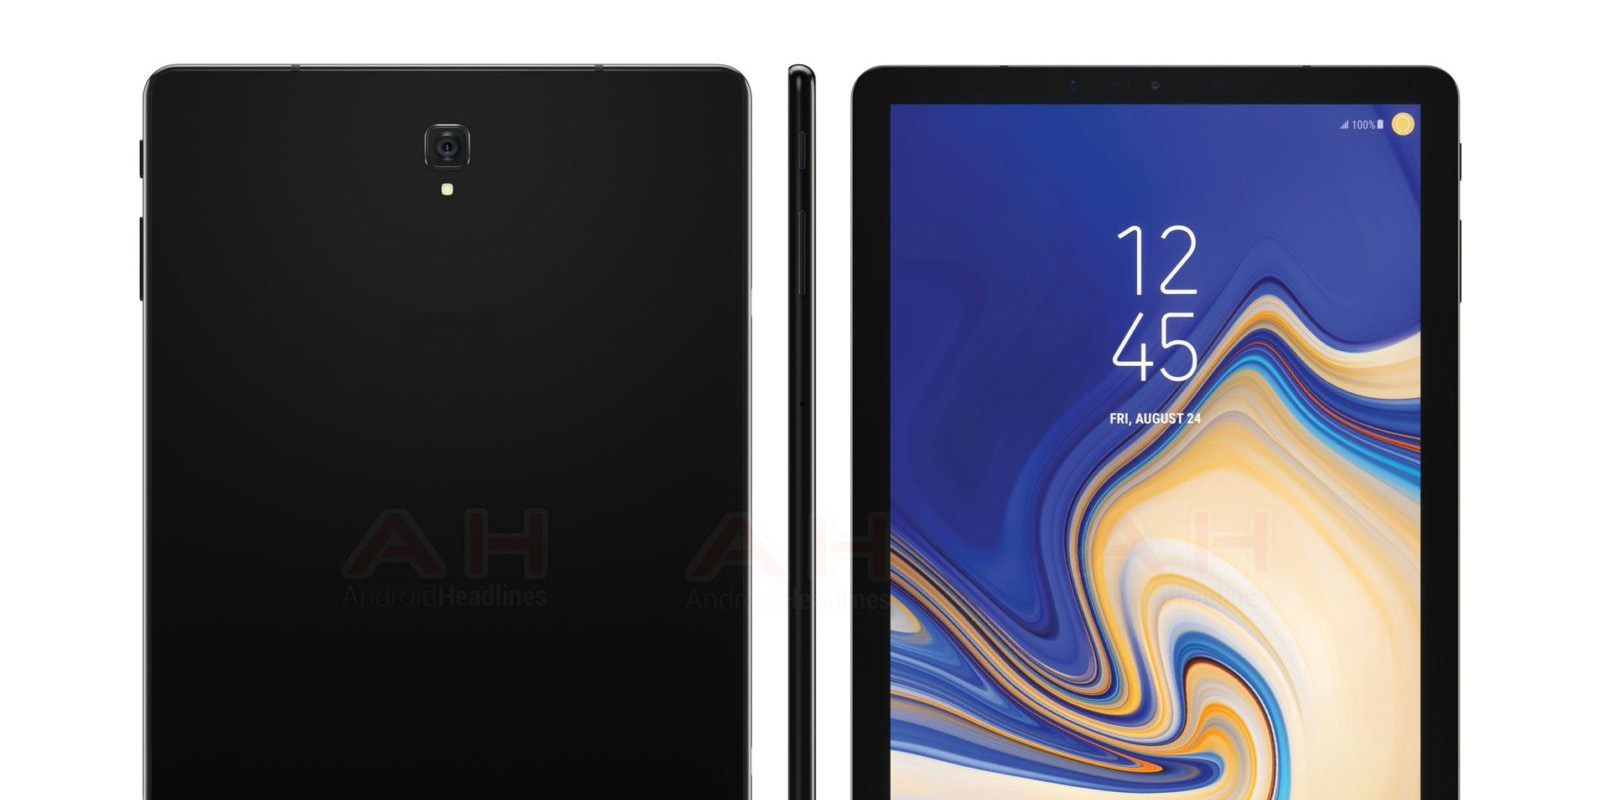 Samsung Galaxy Tab S4 leaks w/ no home button, slimmer